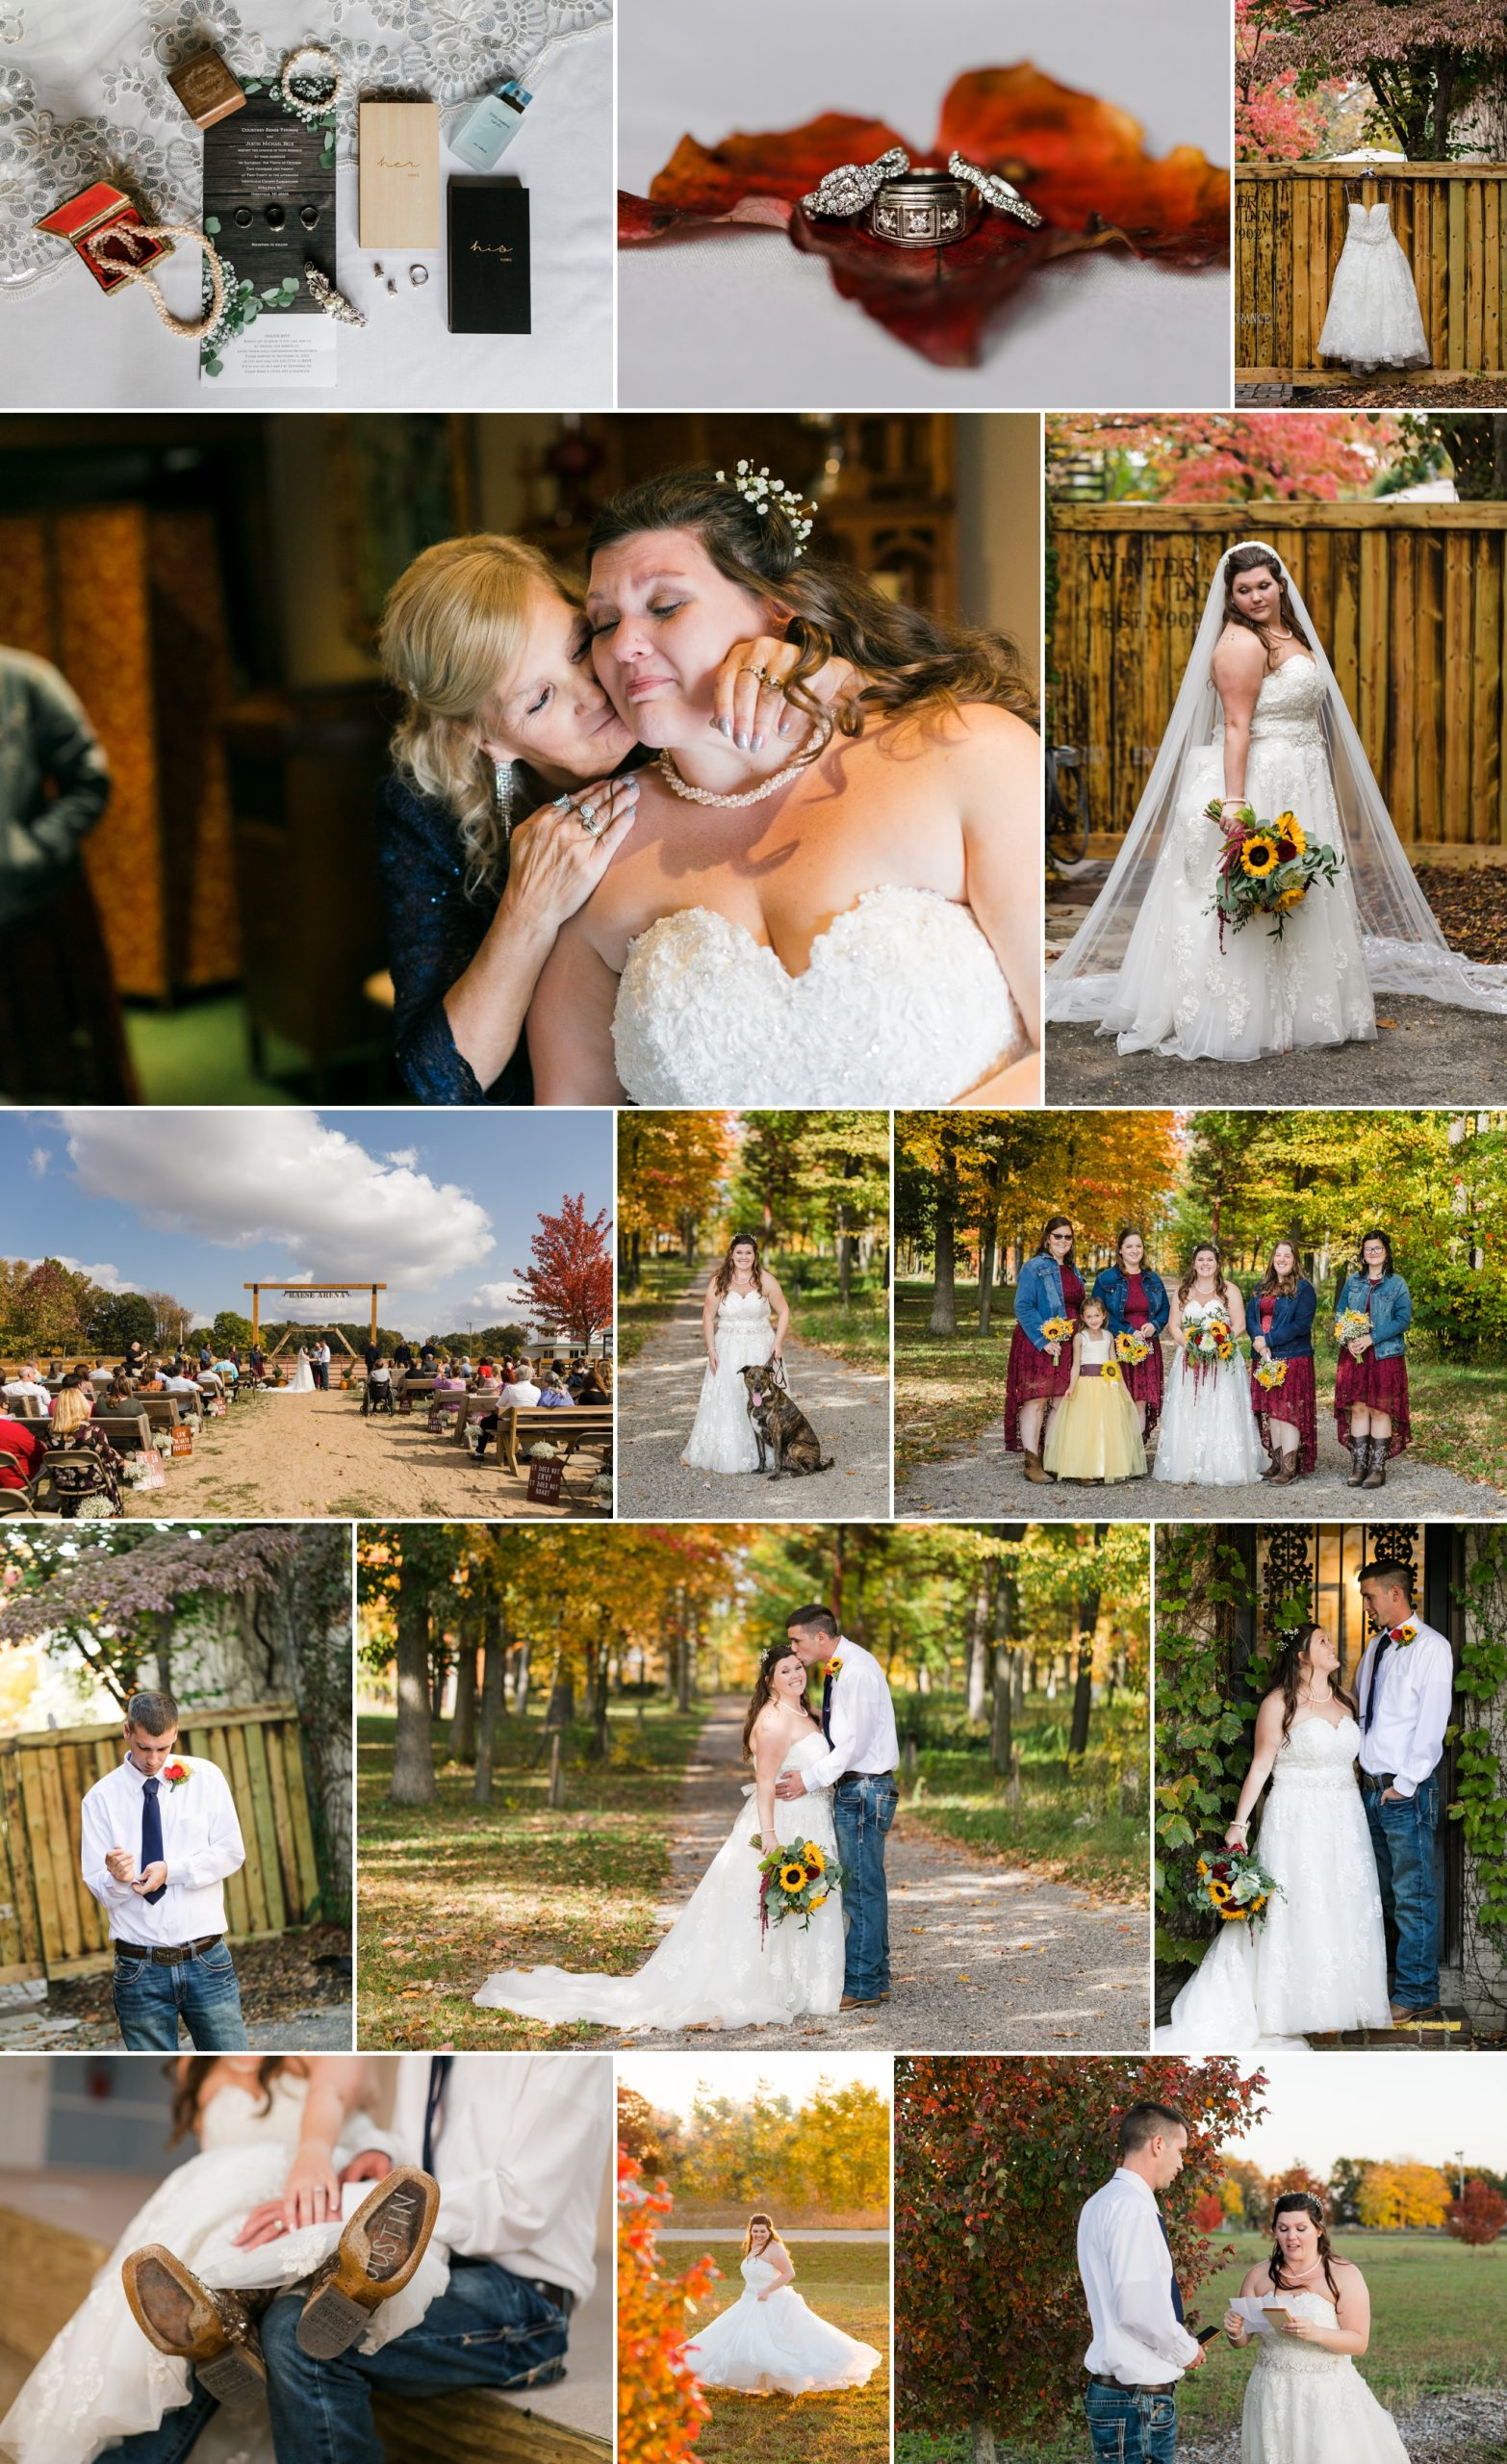 Collage of Courtney and Justin's wedding day on October 10, 2020 in Greenville, MI.